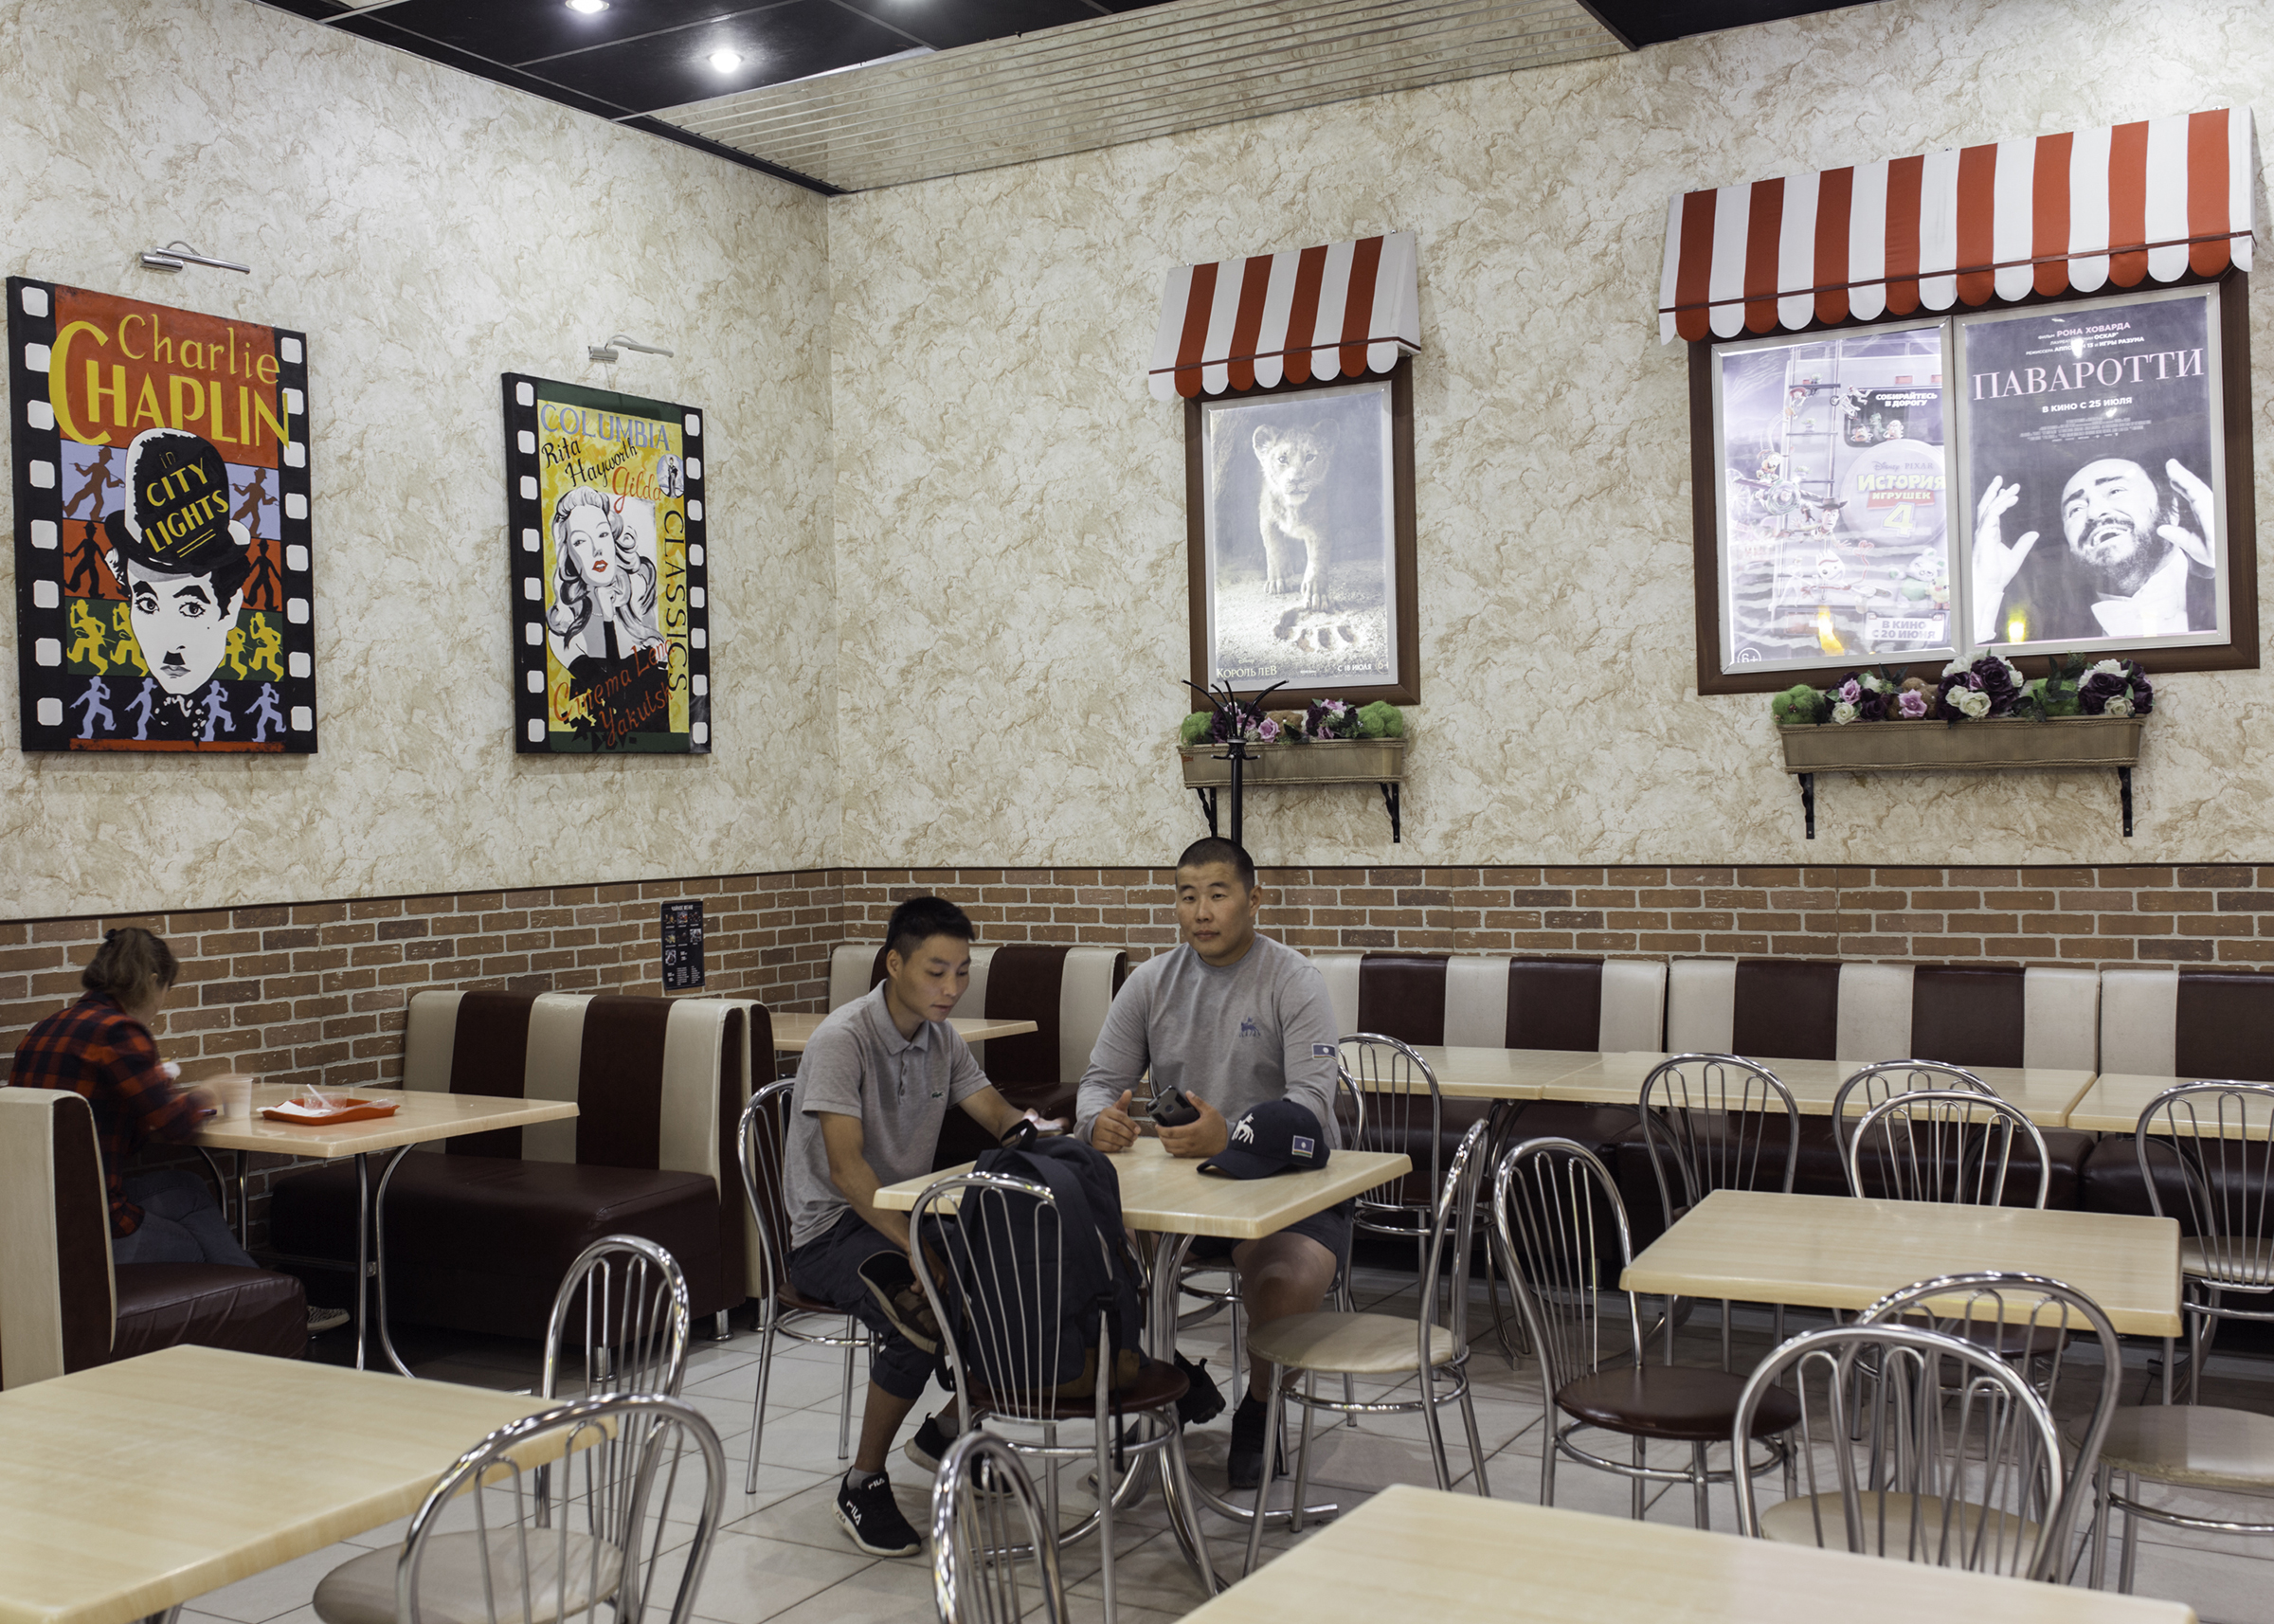 Cafe in the Lena movie theater in Yakutsk. With a population of just over 300 thousand people, there are 6 movie theaters there, showing Yakut films.